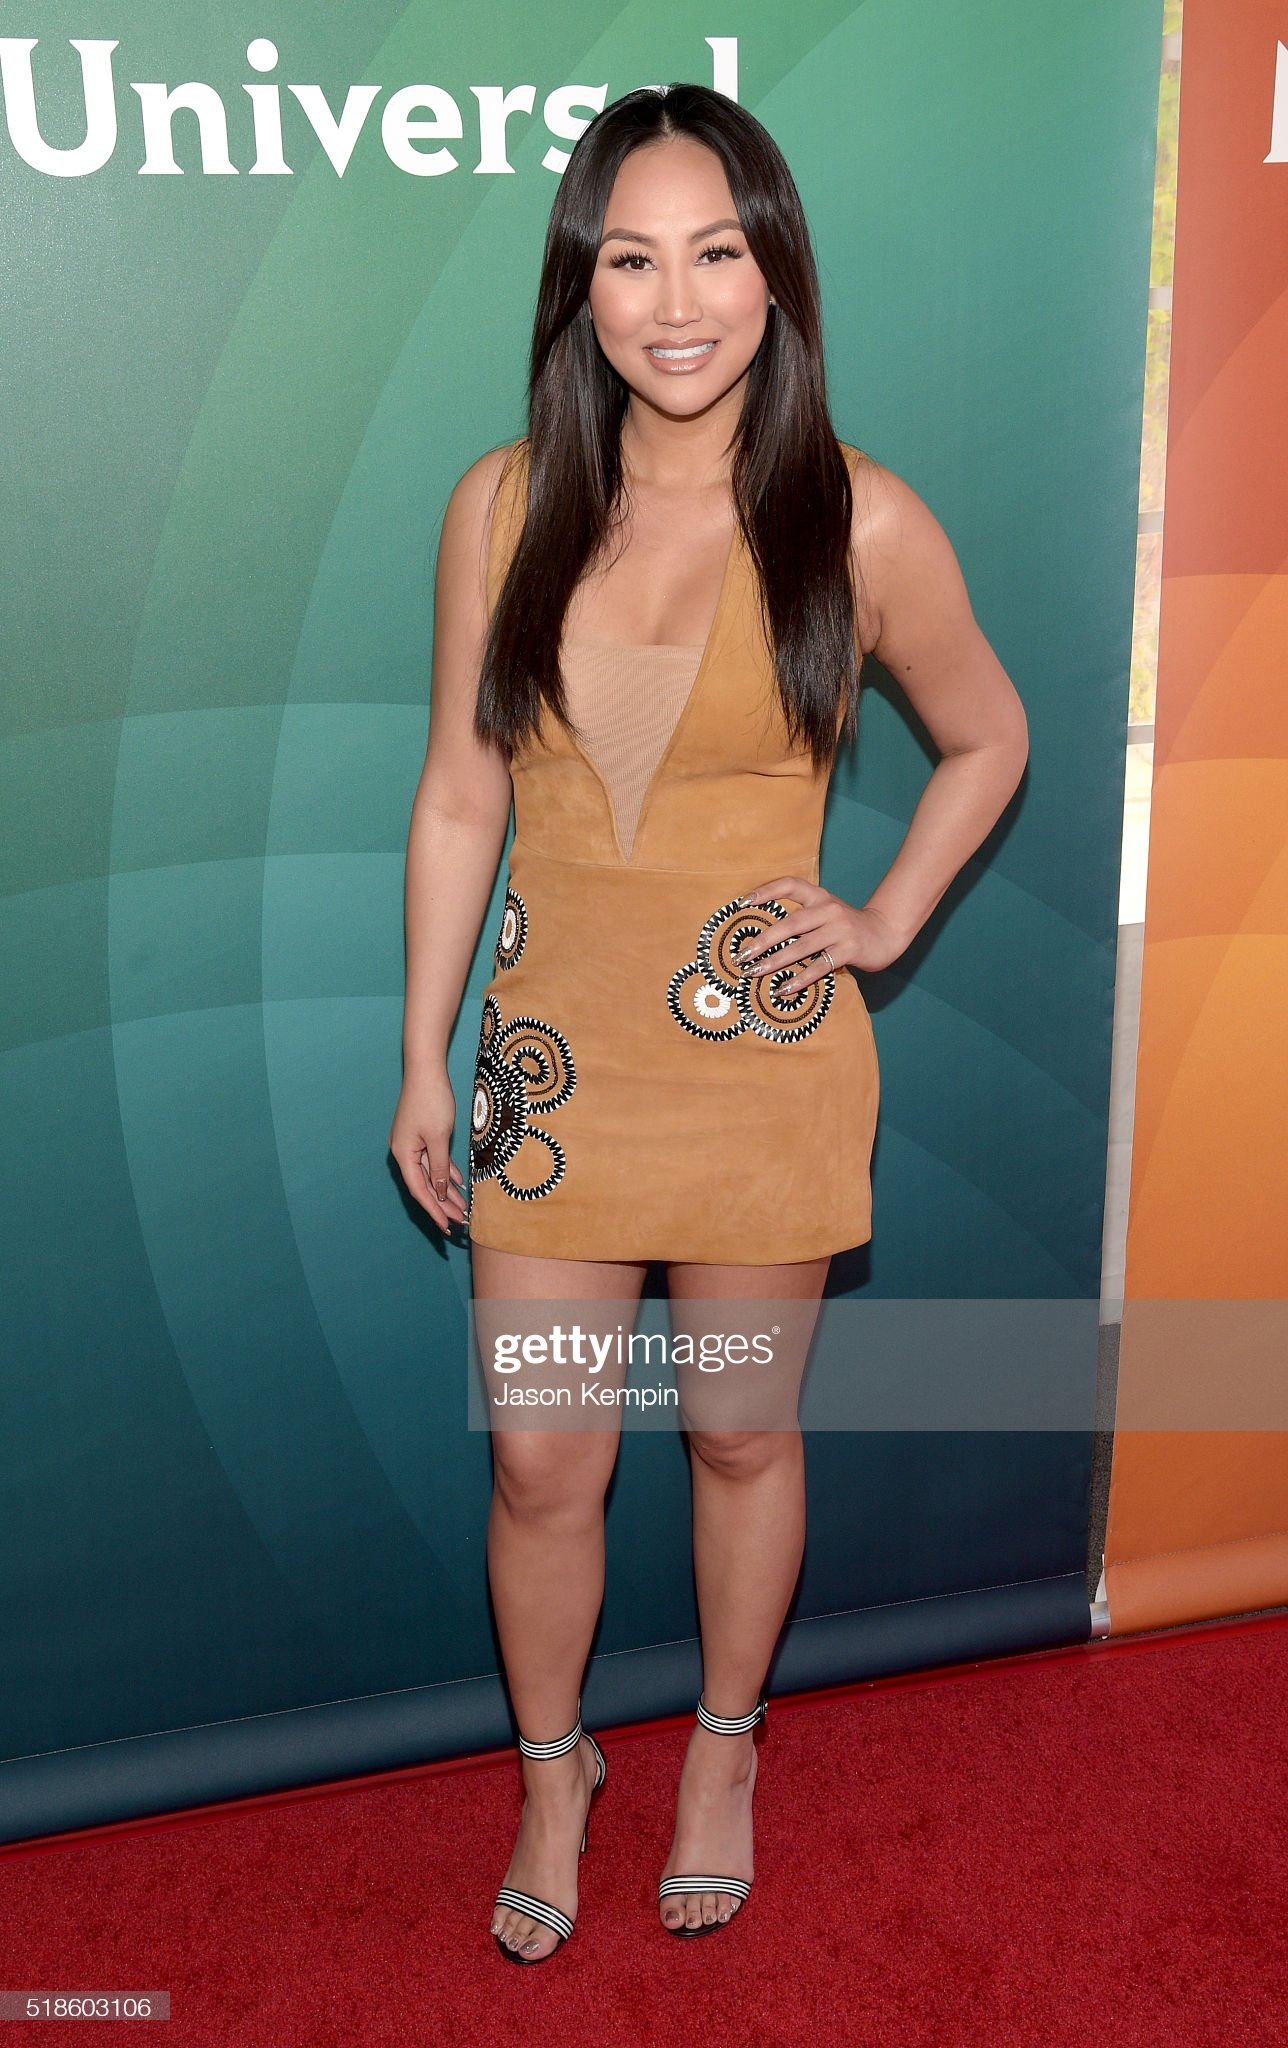 ¿Cuánto mide Dorothy Wang? - Real height Personality-dorothy-wang-attends-the-2016-nbcuniversal-summer-press-picture-id518603106?s=2048x2048